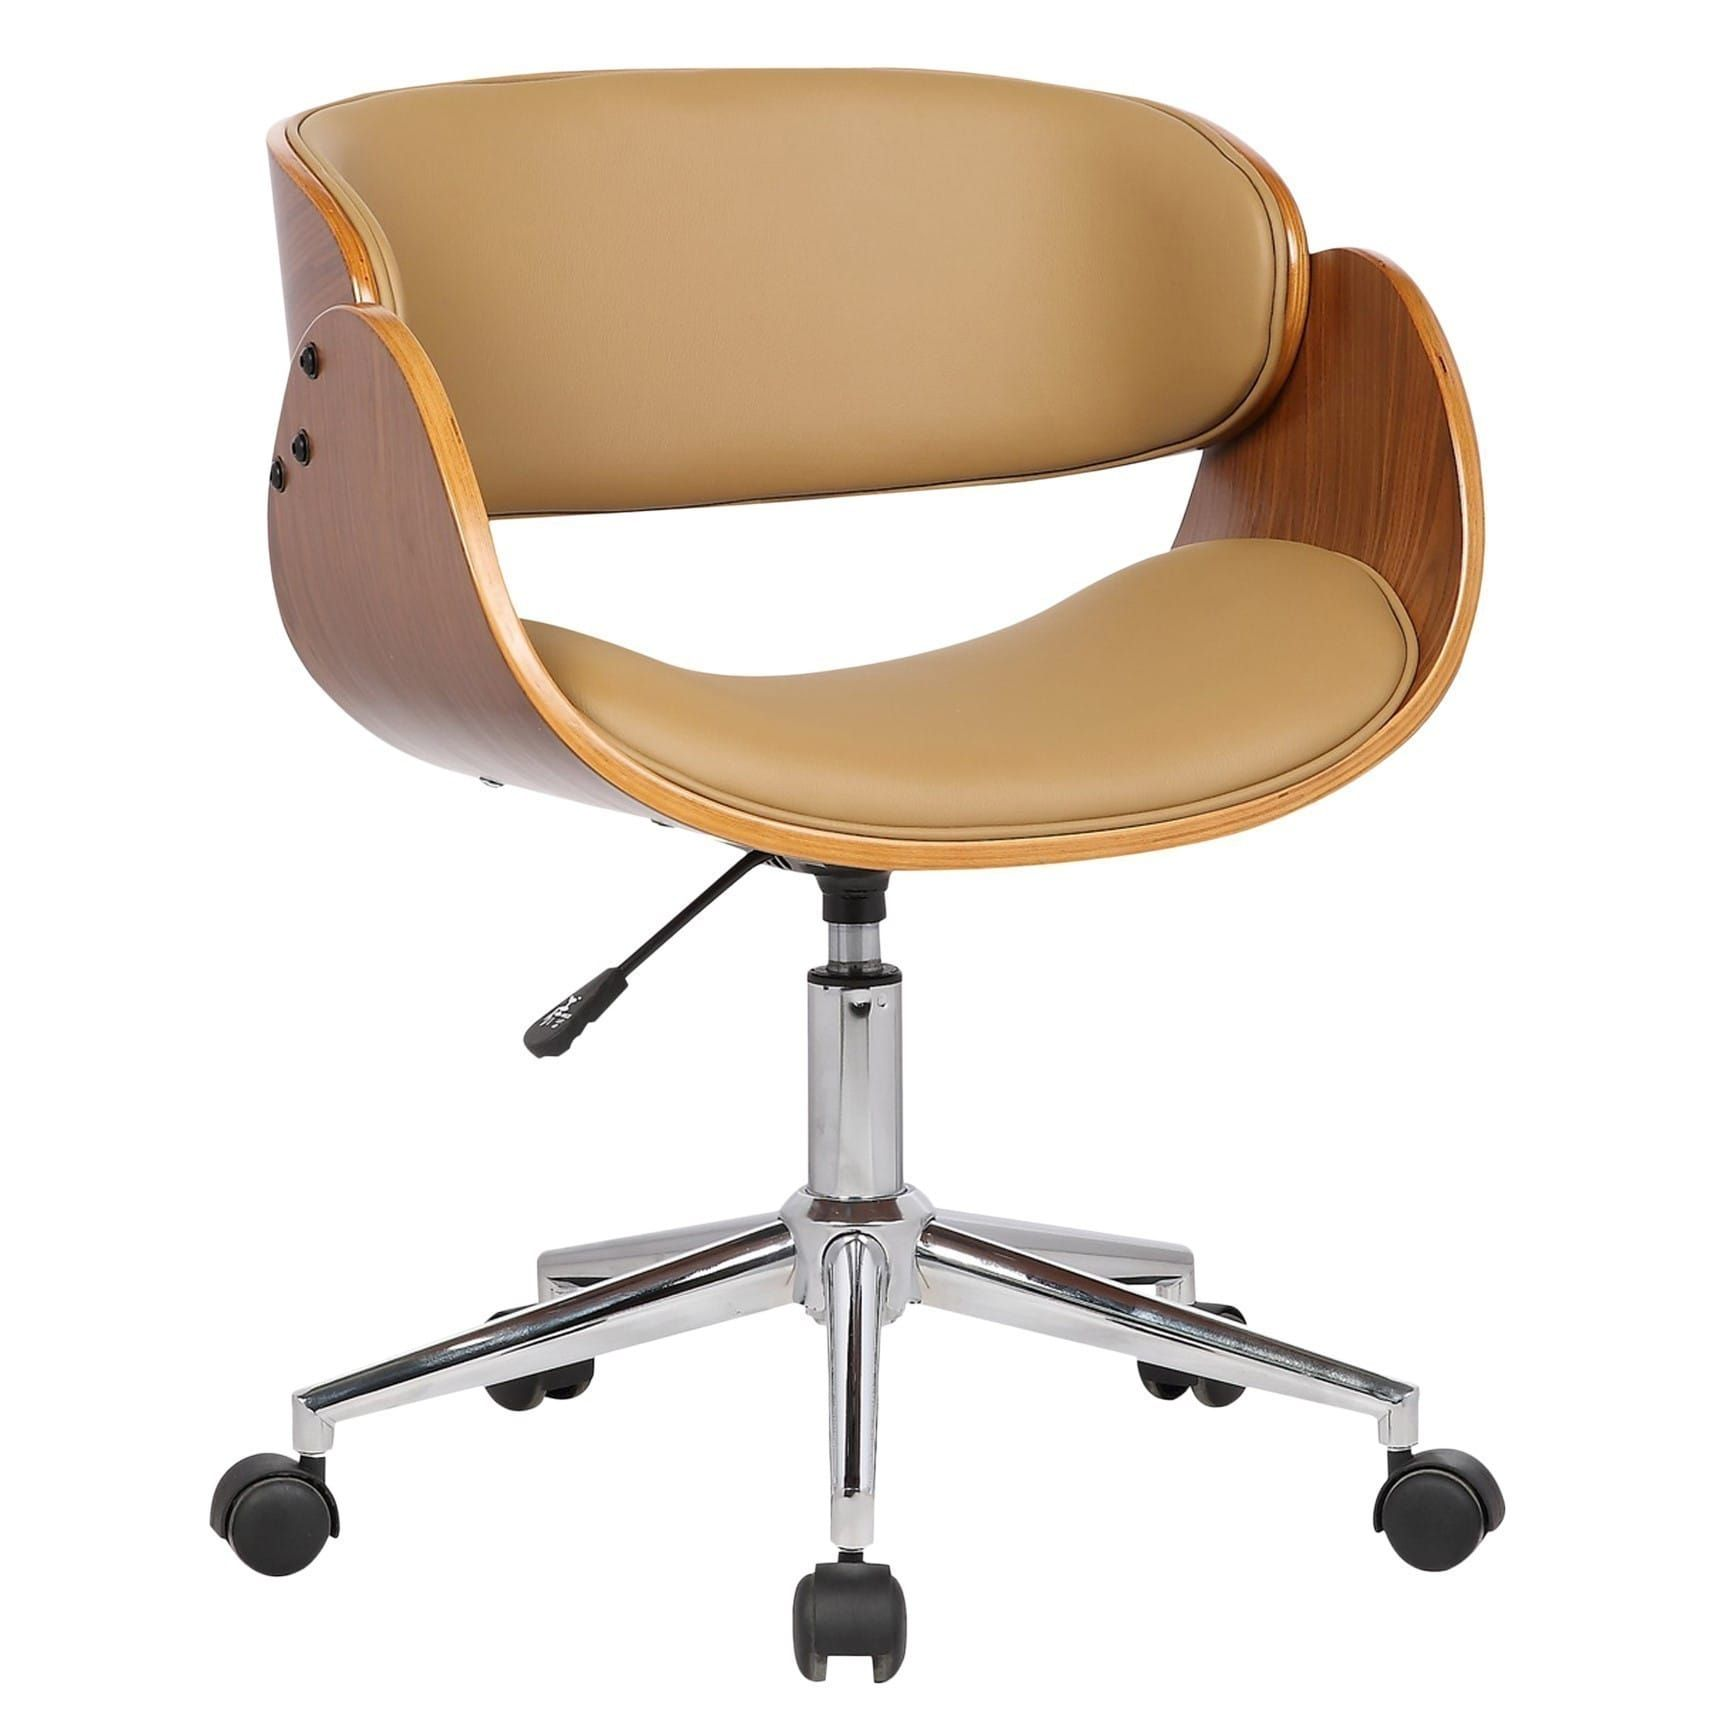 Online Shopping Bedding Furniture Electronics Jewelry Clothing More Office Chair Design Luxury Office Chairs Most Comfortable Office Chair